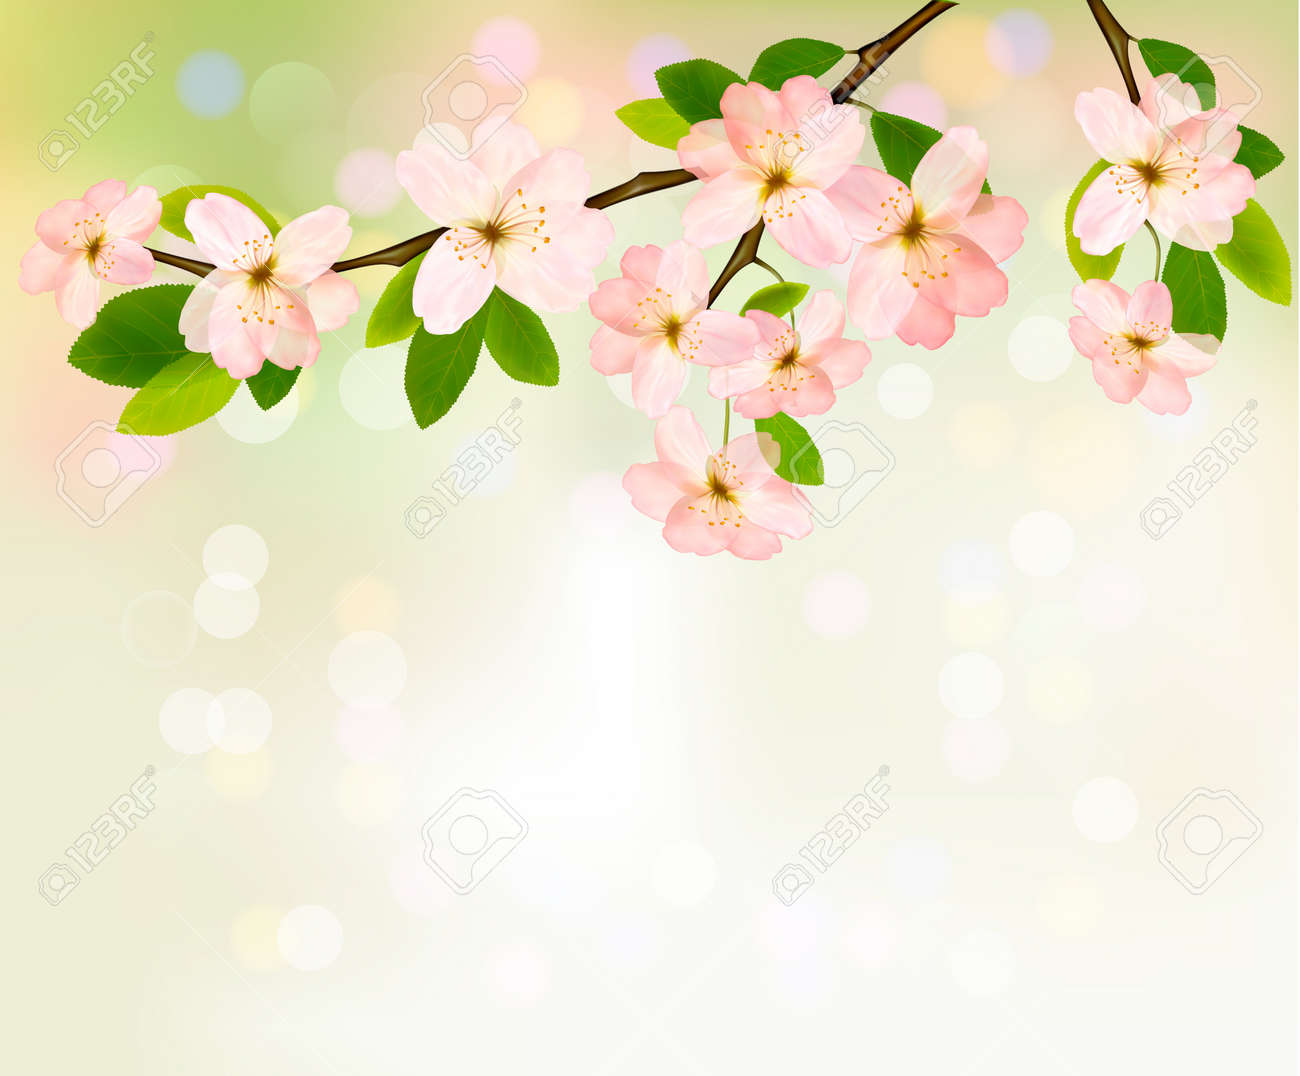 Spring Background With Blossoming Tree Brunch With Spring Flowers